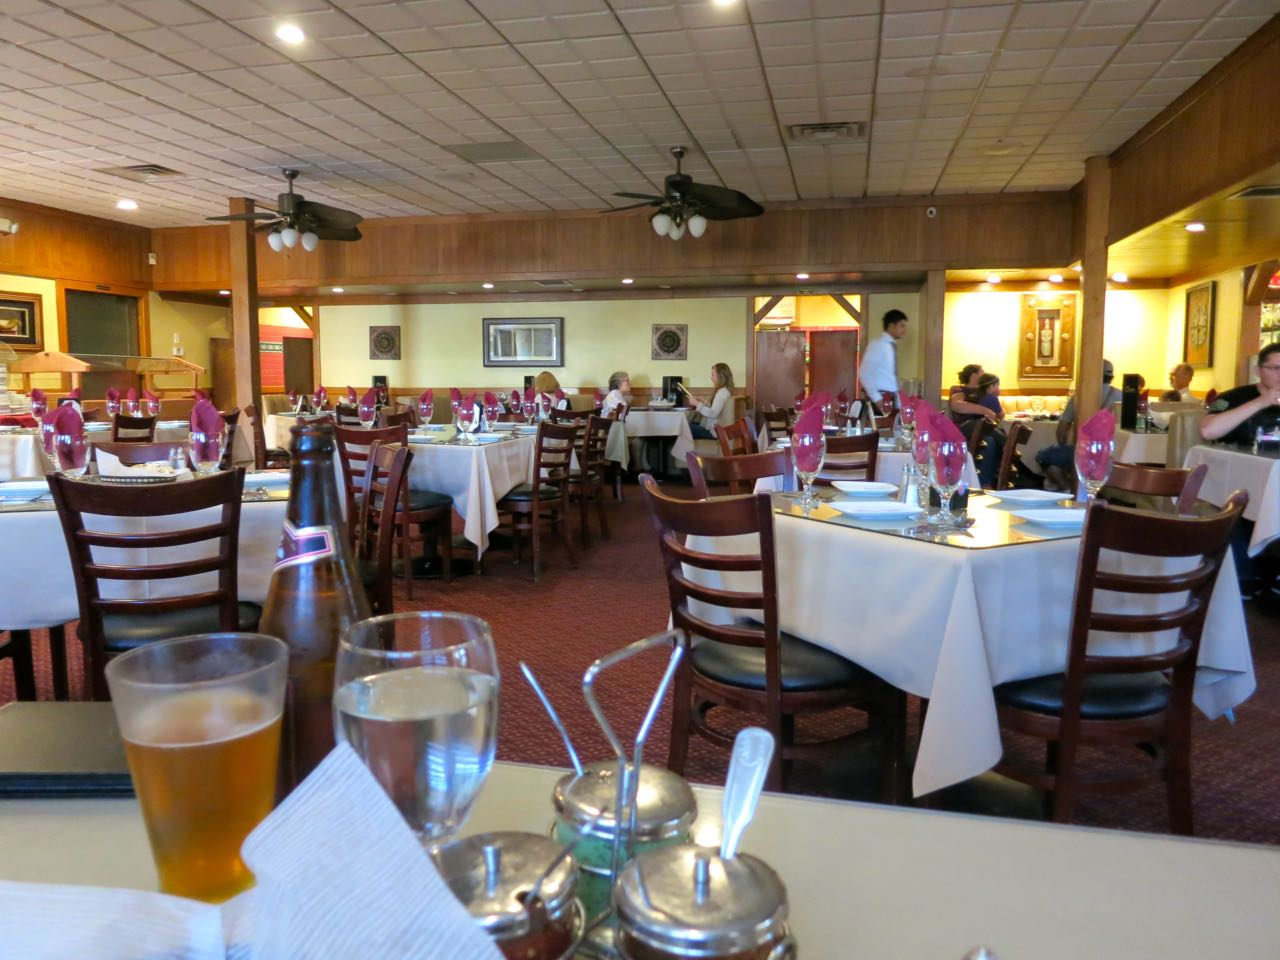 The veracious vegan mantra indian cuisine temecula ca 2 - Mantra indian cuisine ...